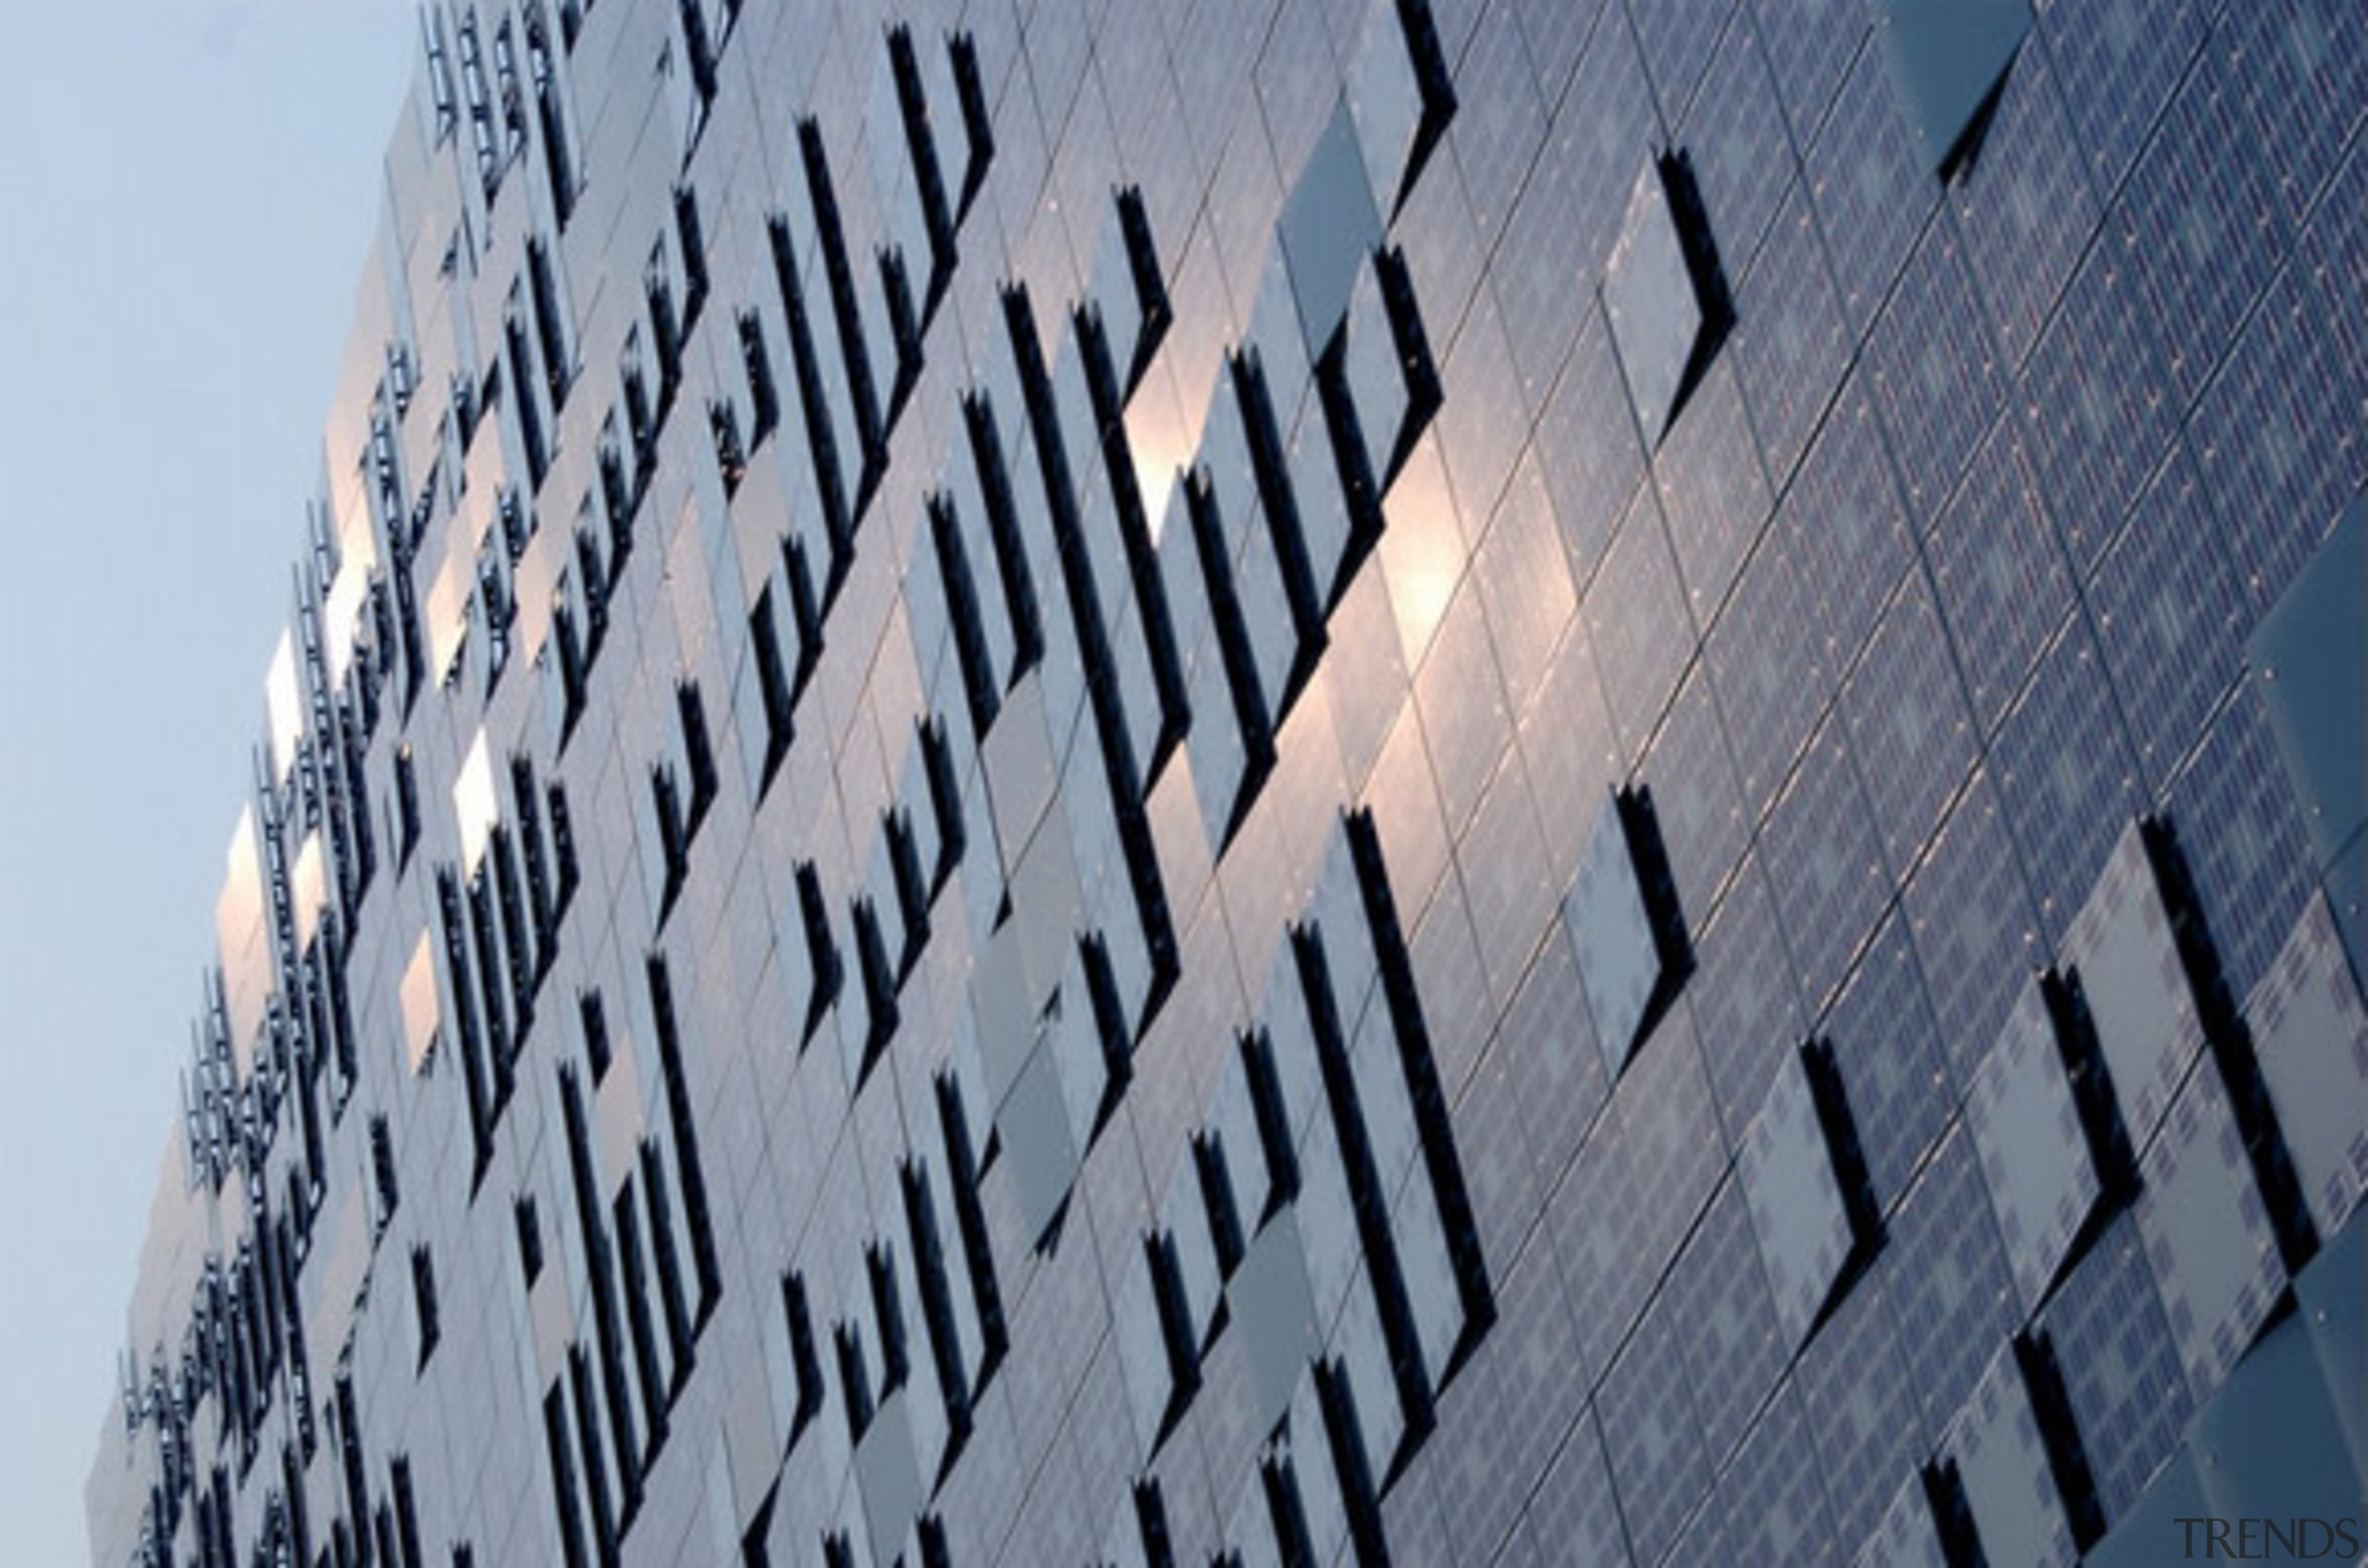 Designed by SGP Architects the GreenPix Zero Energy building, design, font, pattern, reflection, sky, water, gray